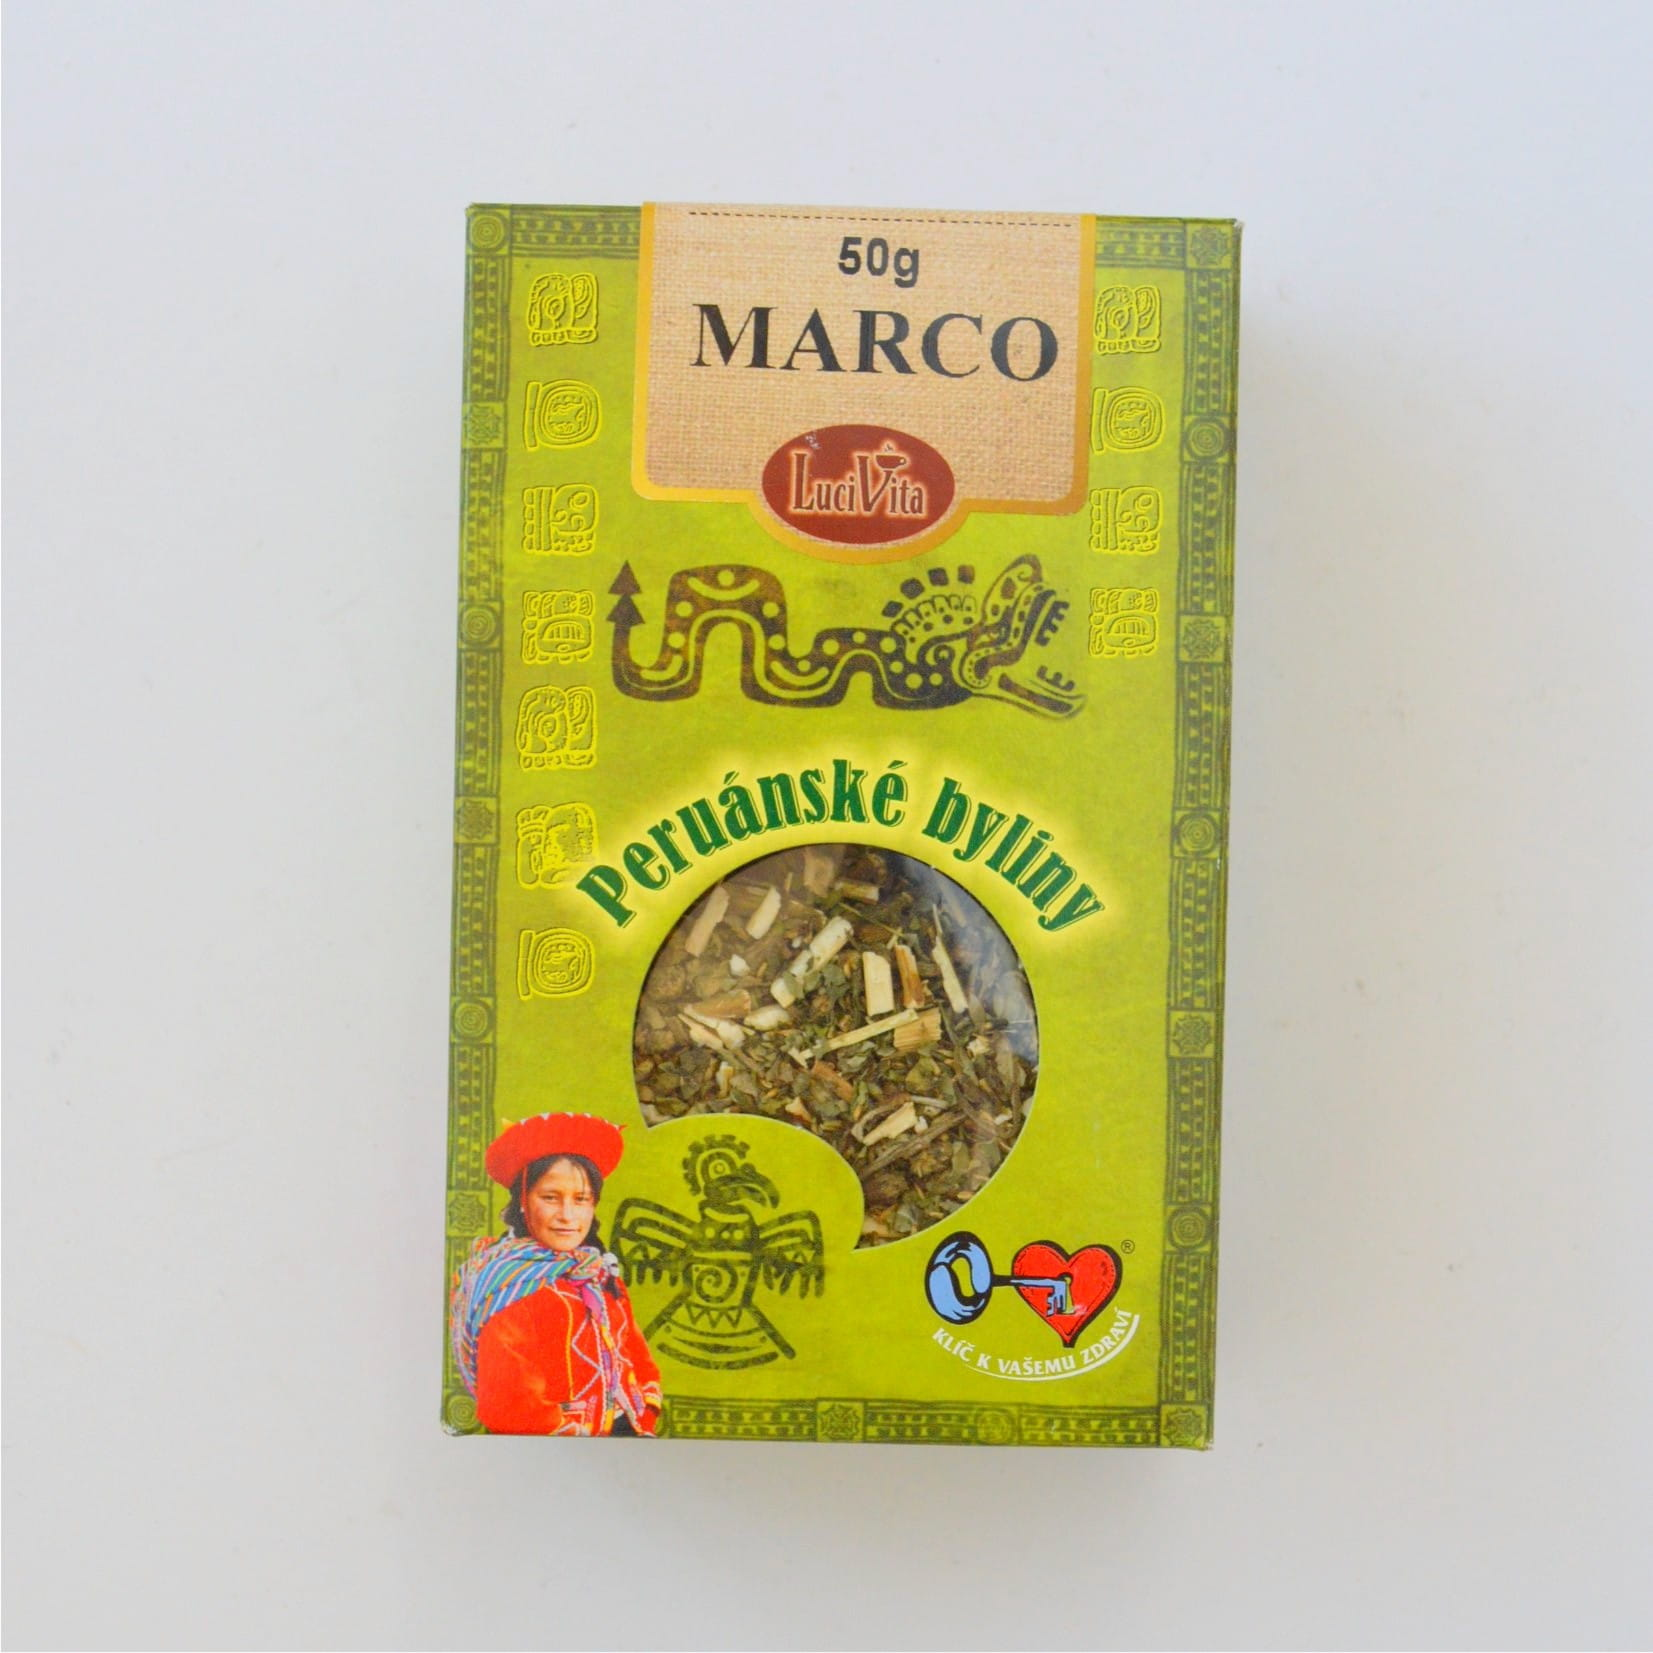 Marco - 50g